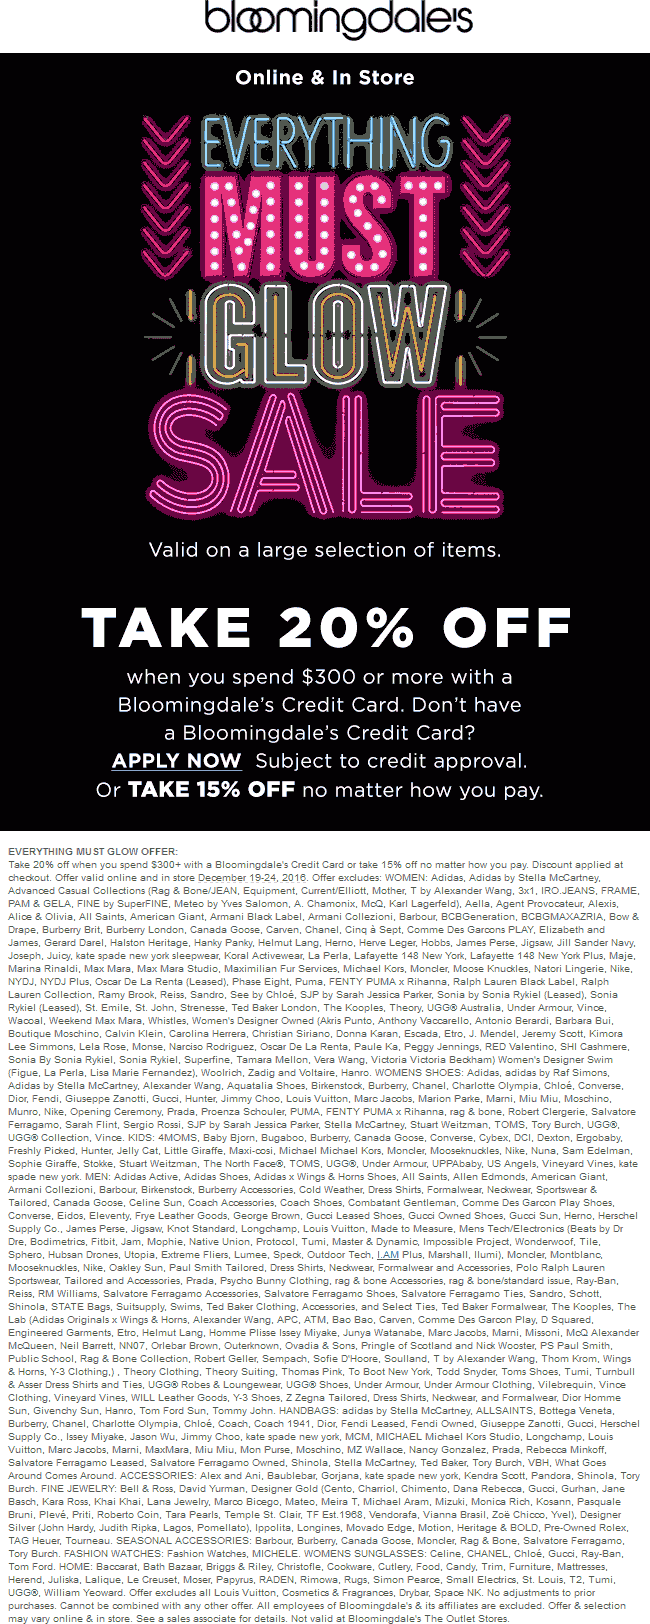 Bloomingdales.com Promo Coupon 15% off at Bloomingdales, ditto online